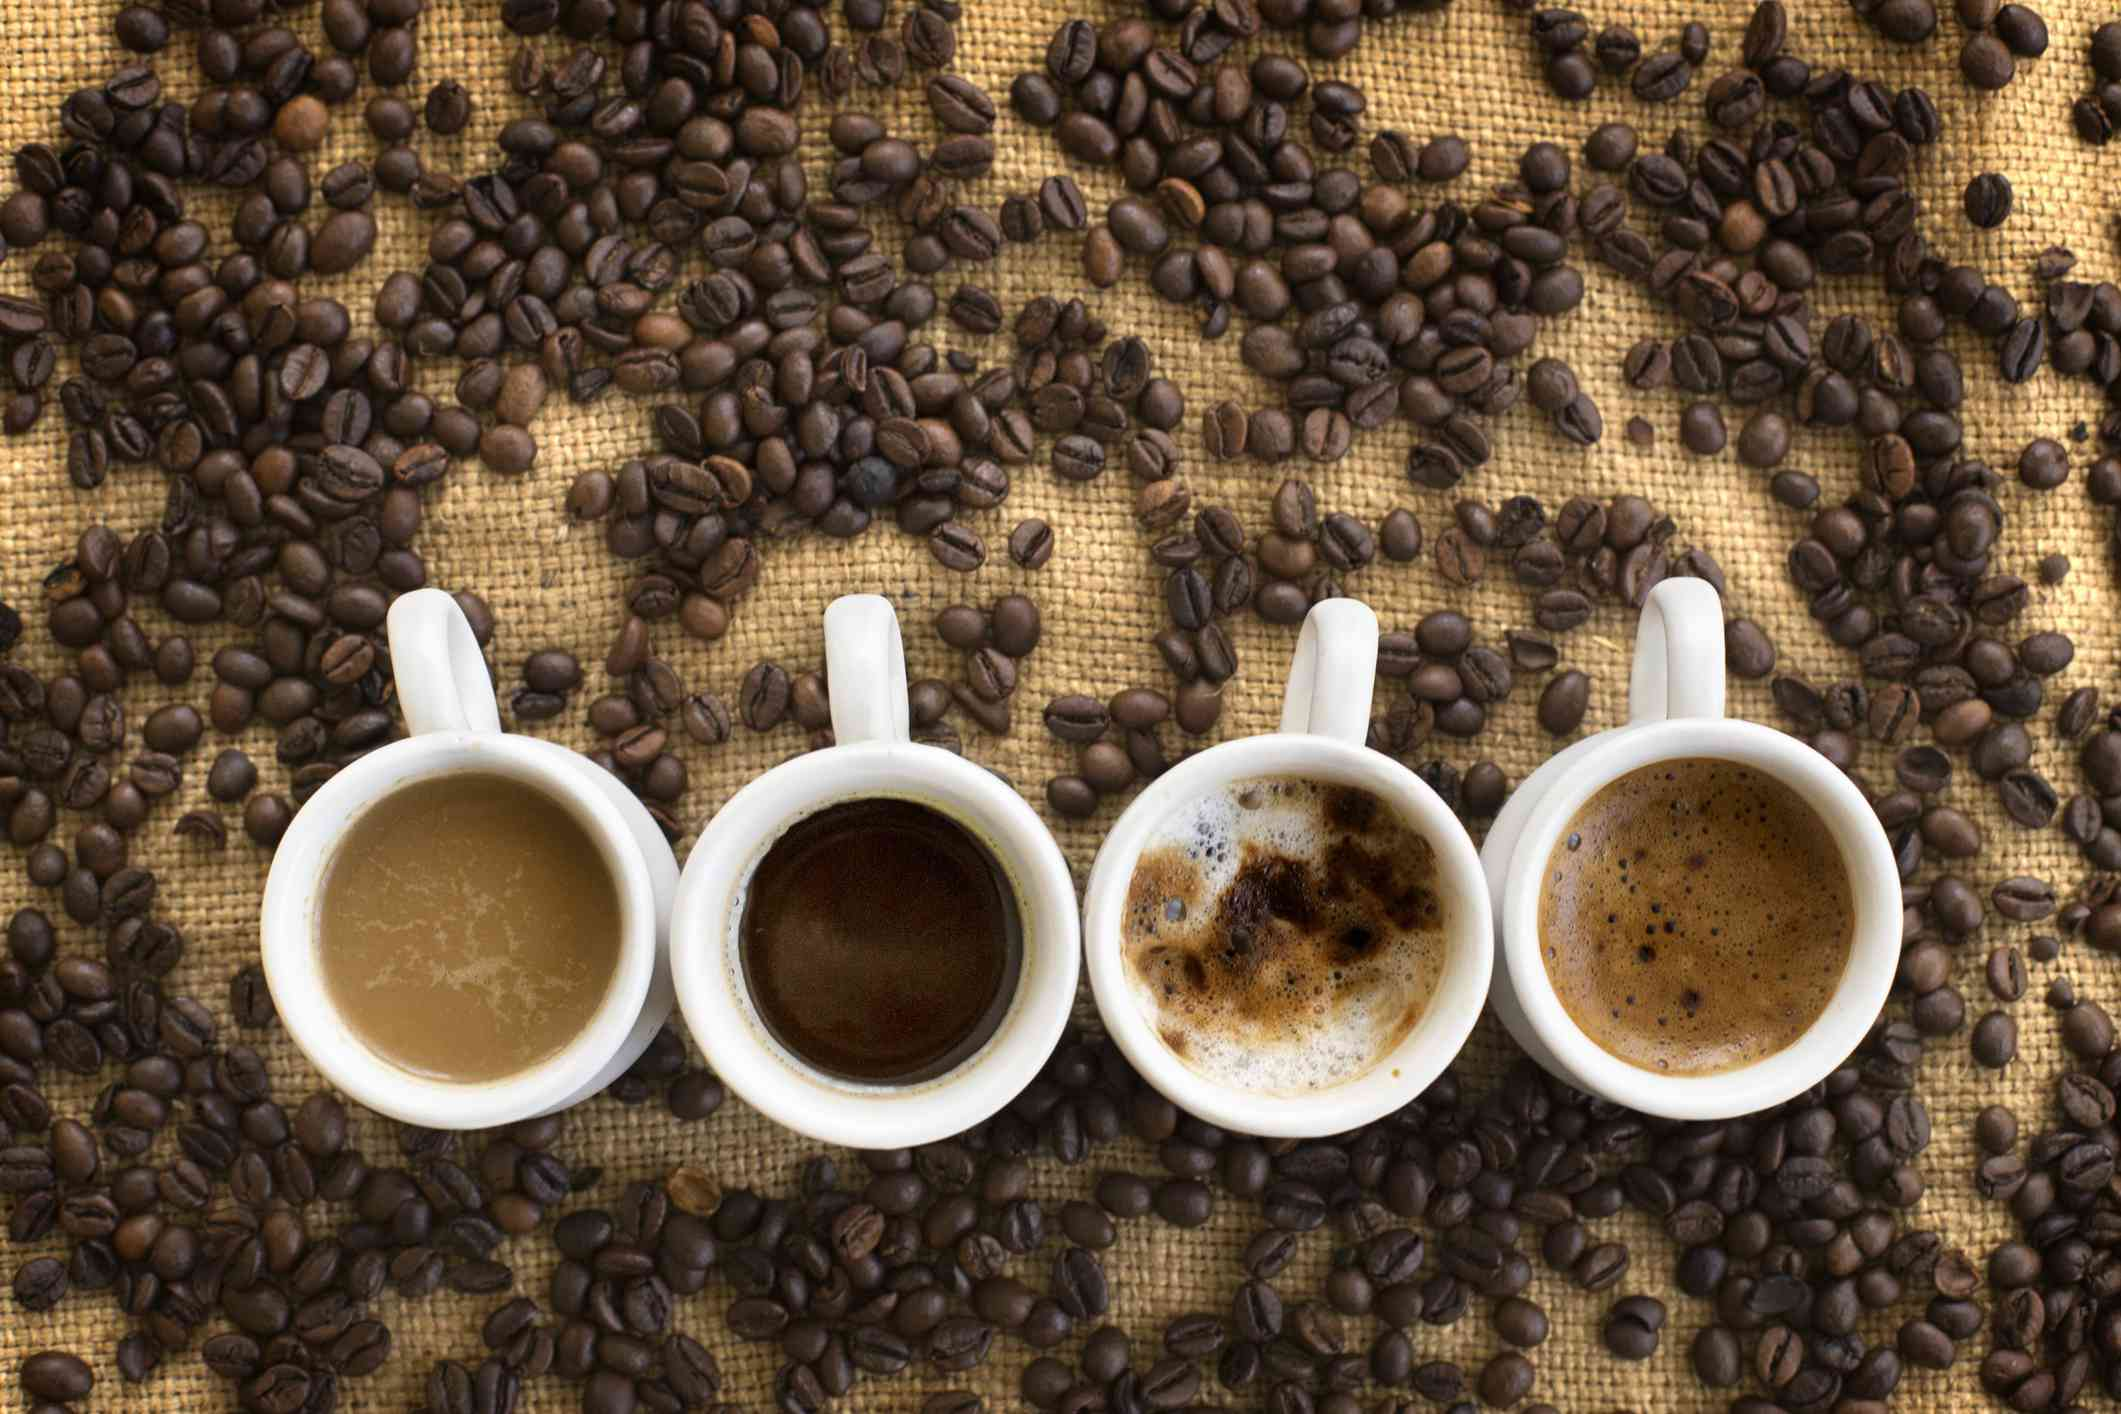 Coffee cups surrounded in coffee beans